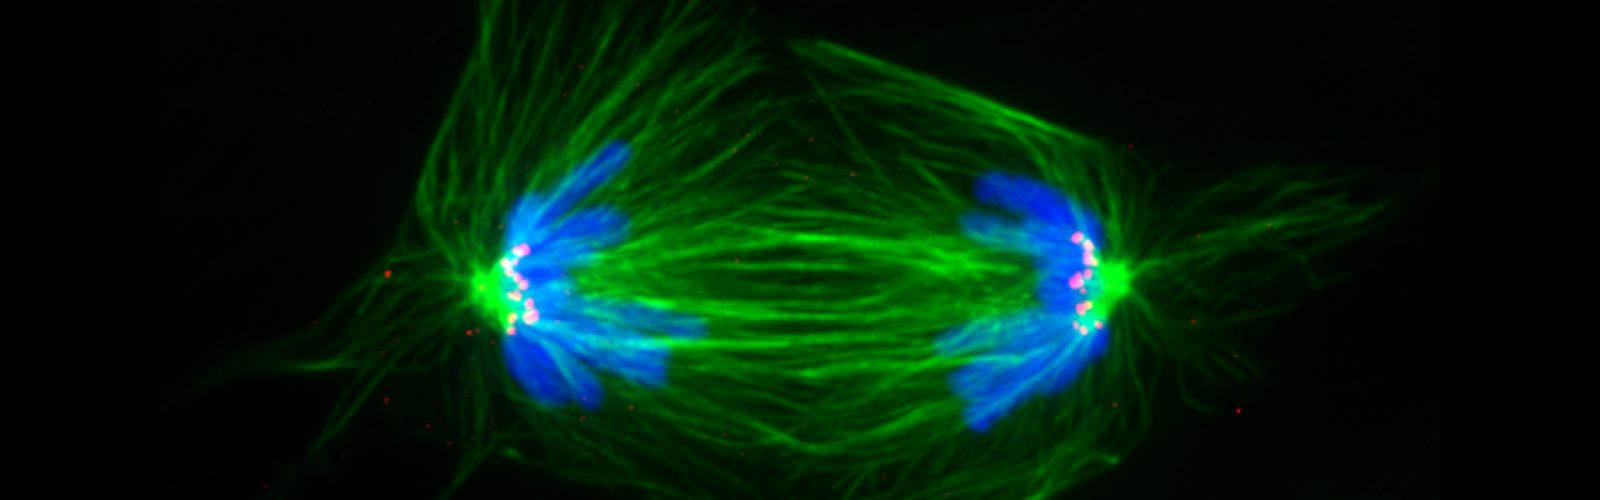 FRET image, cell in anaphase